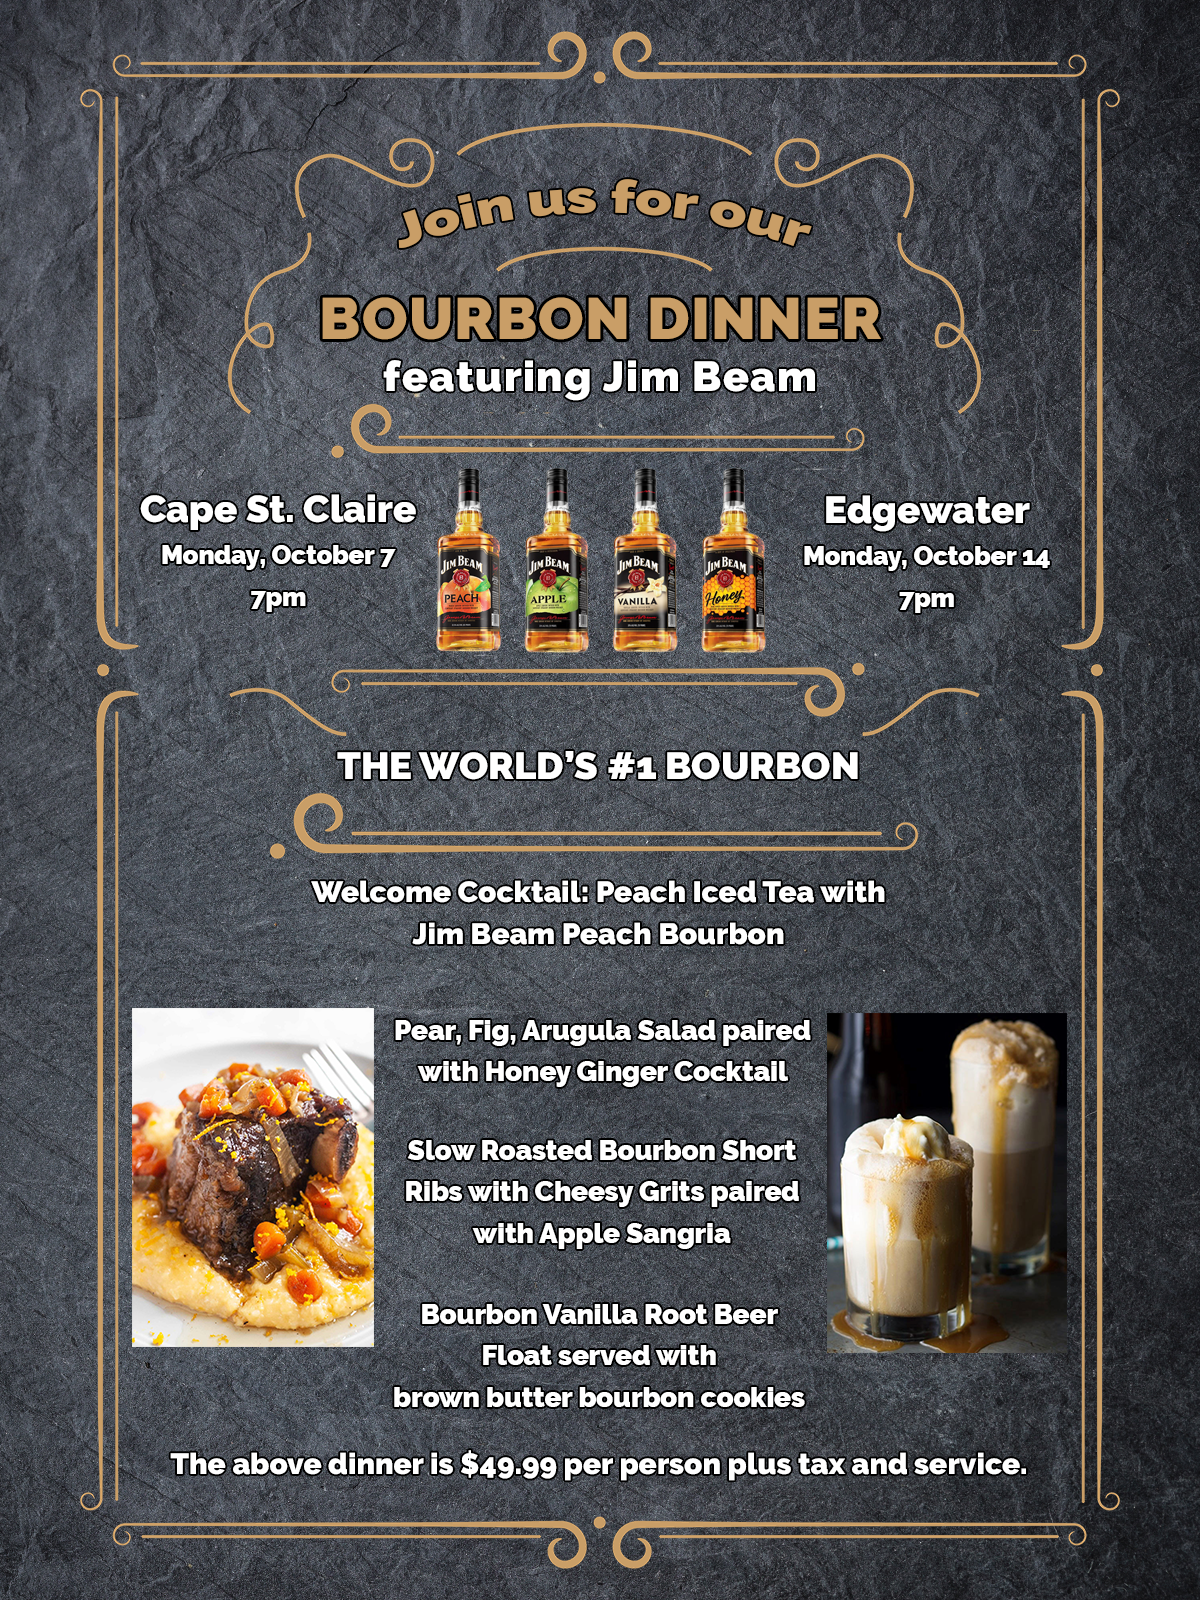 The World's #1 Bourbon. It's the bourbon that started it all. And more than 200 years later, it's inherited yet another first. JIM BEAM®  Join us for our Bourbon Dinner featuring Jim Beam (photo of 4 bottles include somewhere on email)  Cape St. Claire: Monday, Oct 7 @ 7pm Edgewater: Monday, Oct 14 @ 7pm  Welcome Cocktail: Peach Iced Tea with Jim Beam Peach Bourbon  Pear, Fig, Arugula Salad paired with Honey Ginger Cocktail  Slow Roasted Bourbon Short Ribs with Cheesy Grits paired with Apple Sangria. Bourbon Vanilla Root Beer Float served with a cookie.  The above dinner is $49.99 per person plus tax and service.